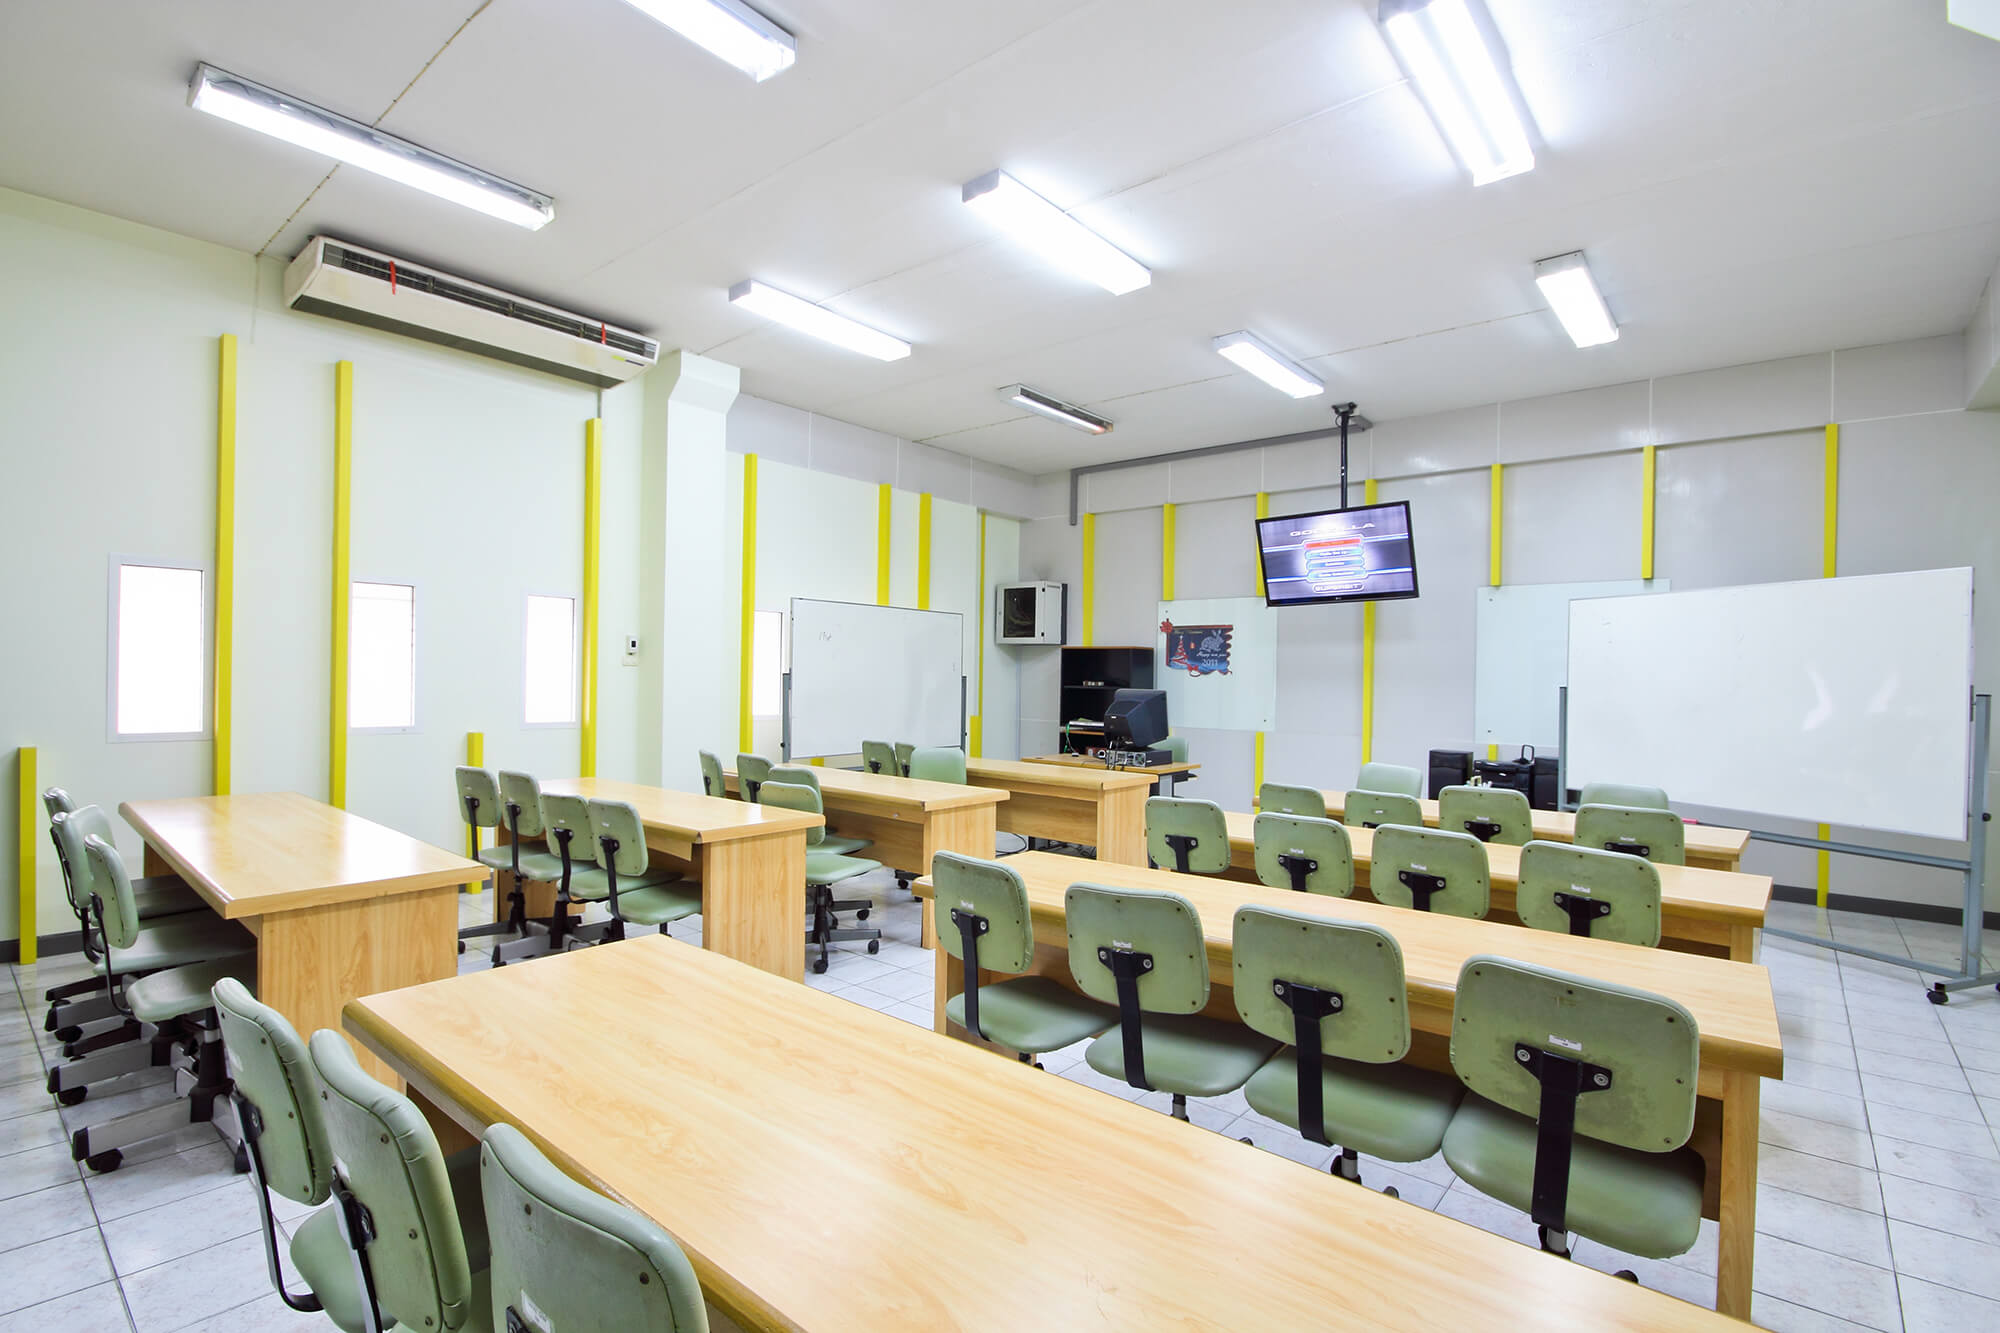 led lights in classroom